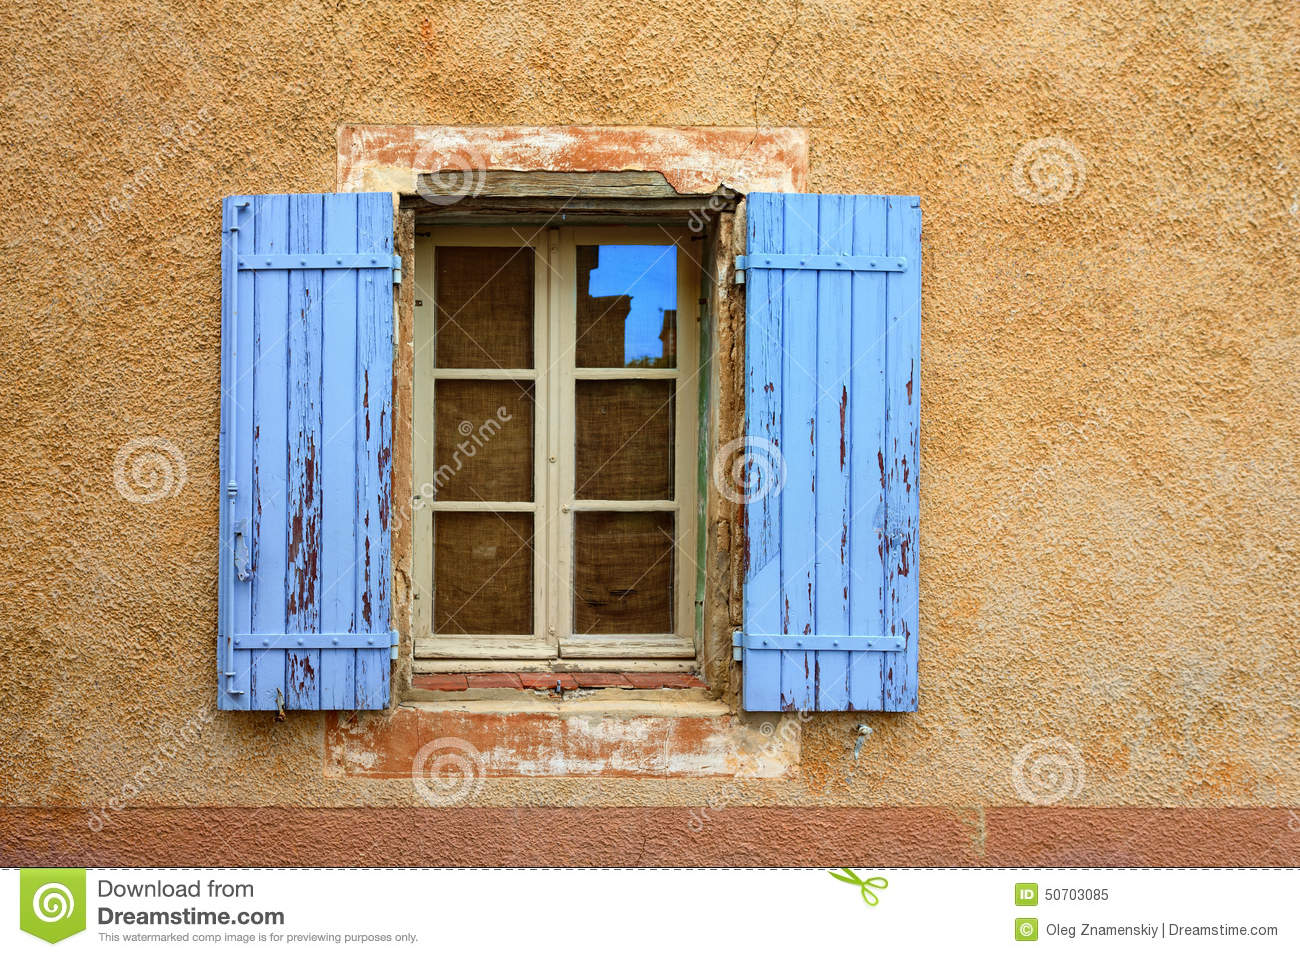 La provence france fen tre ouverte photo stock image for La fenetre ouverte